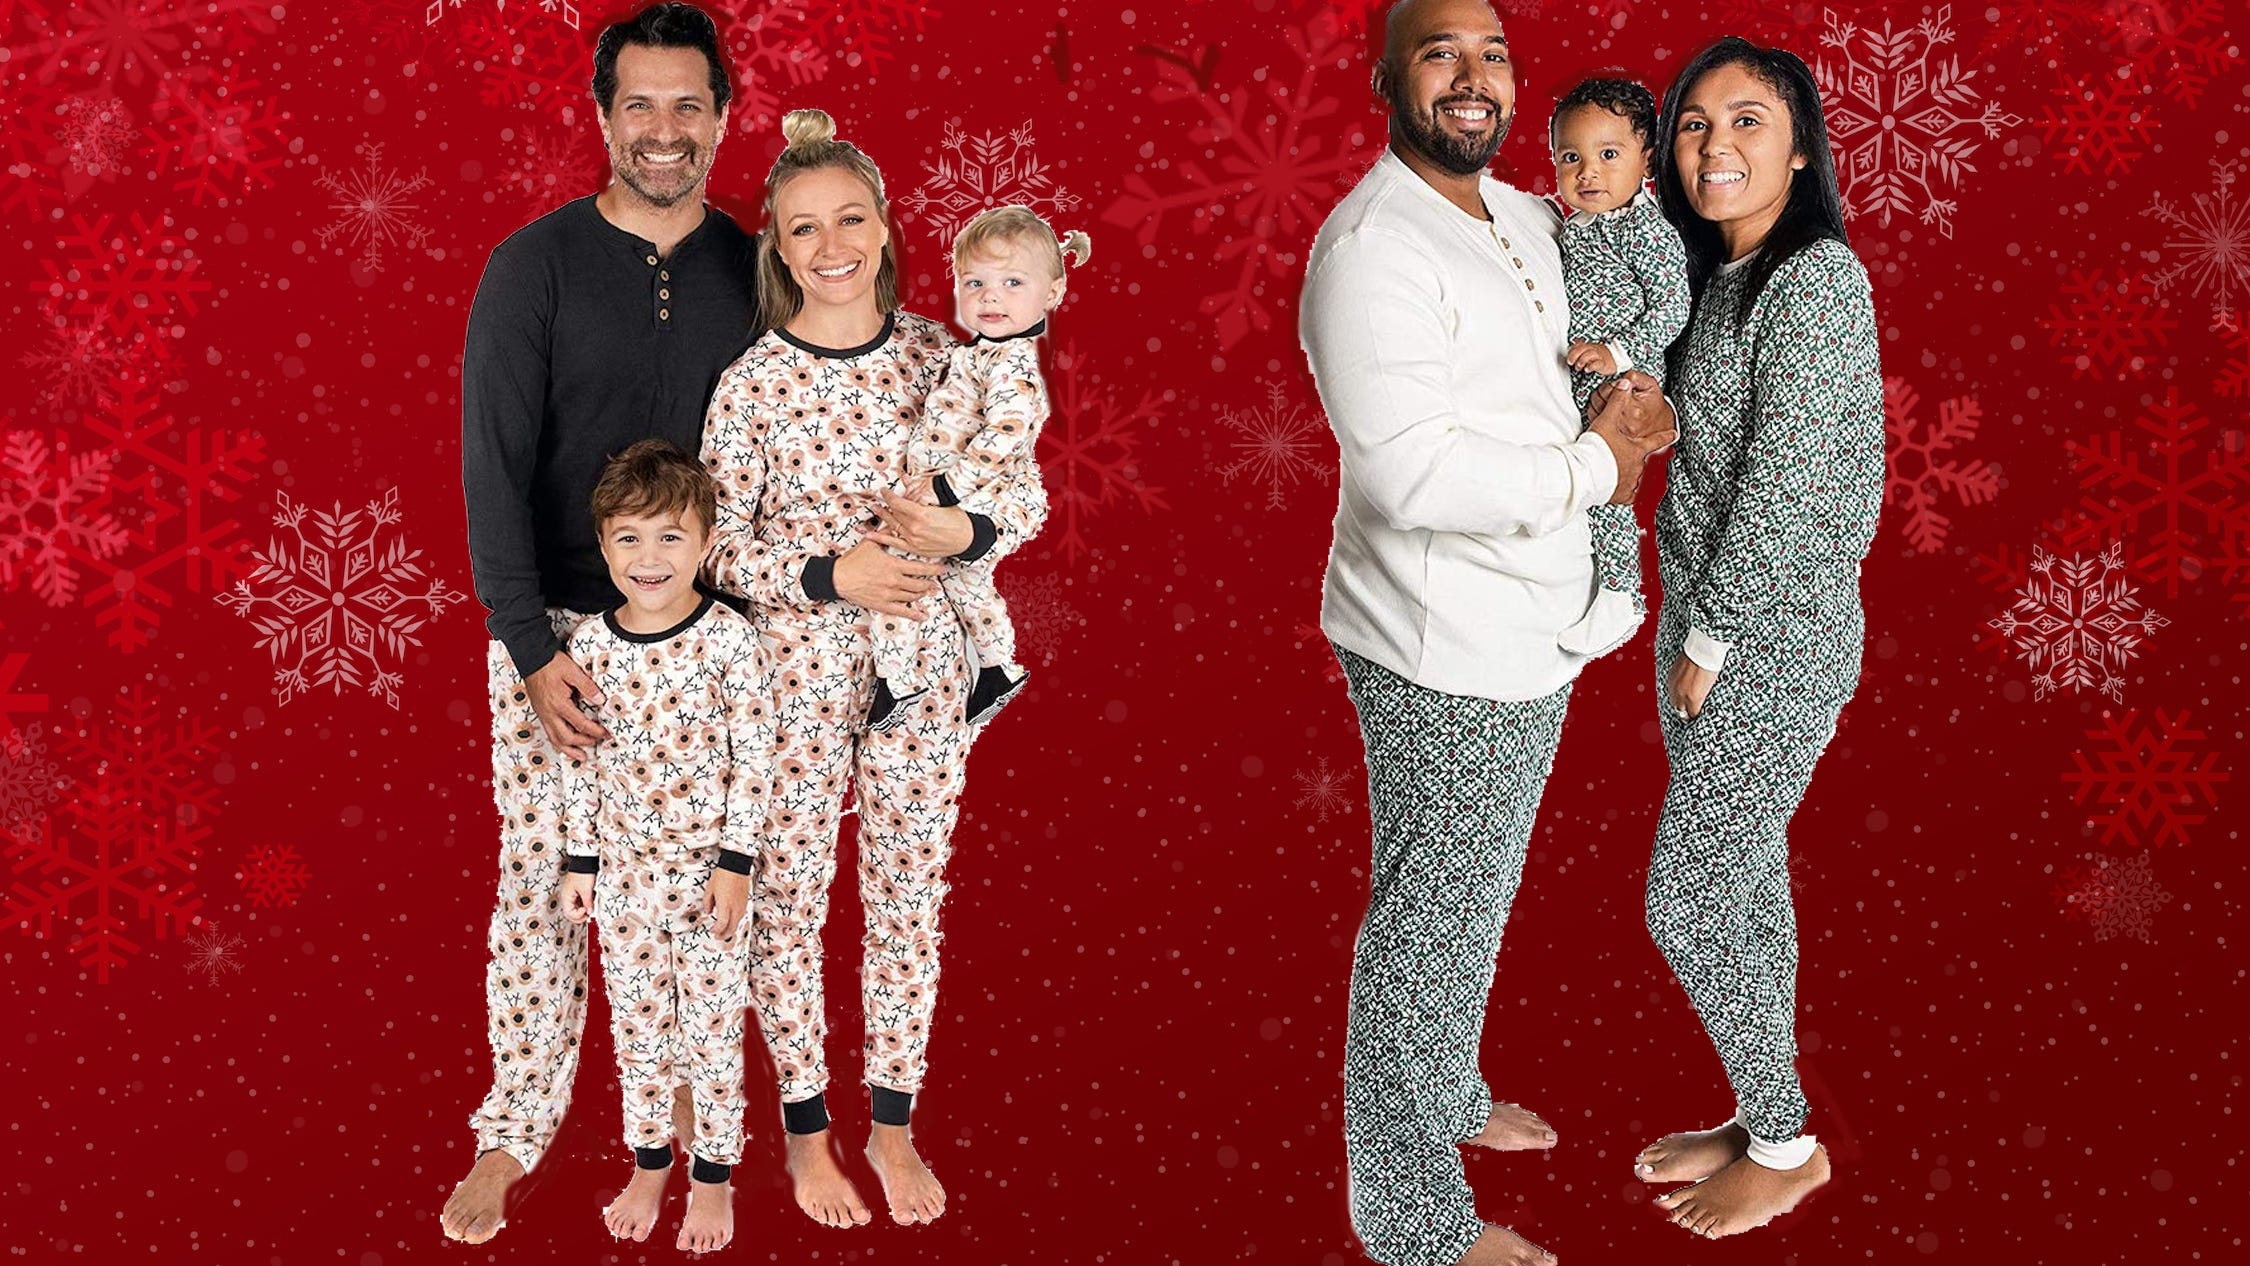 Shop matching family pj's from $9